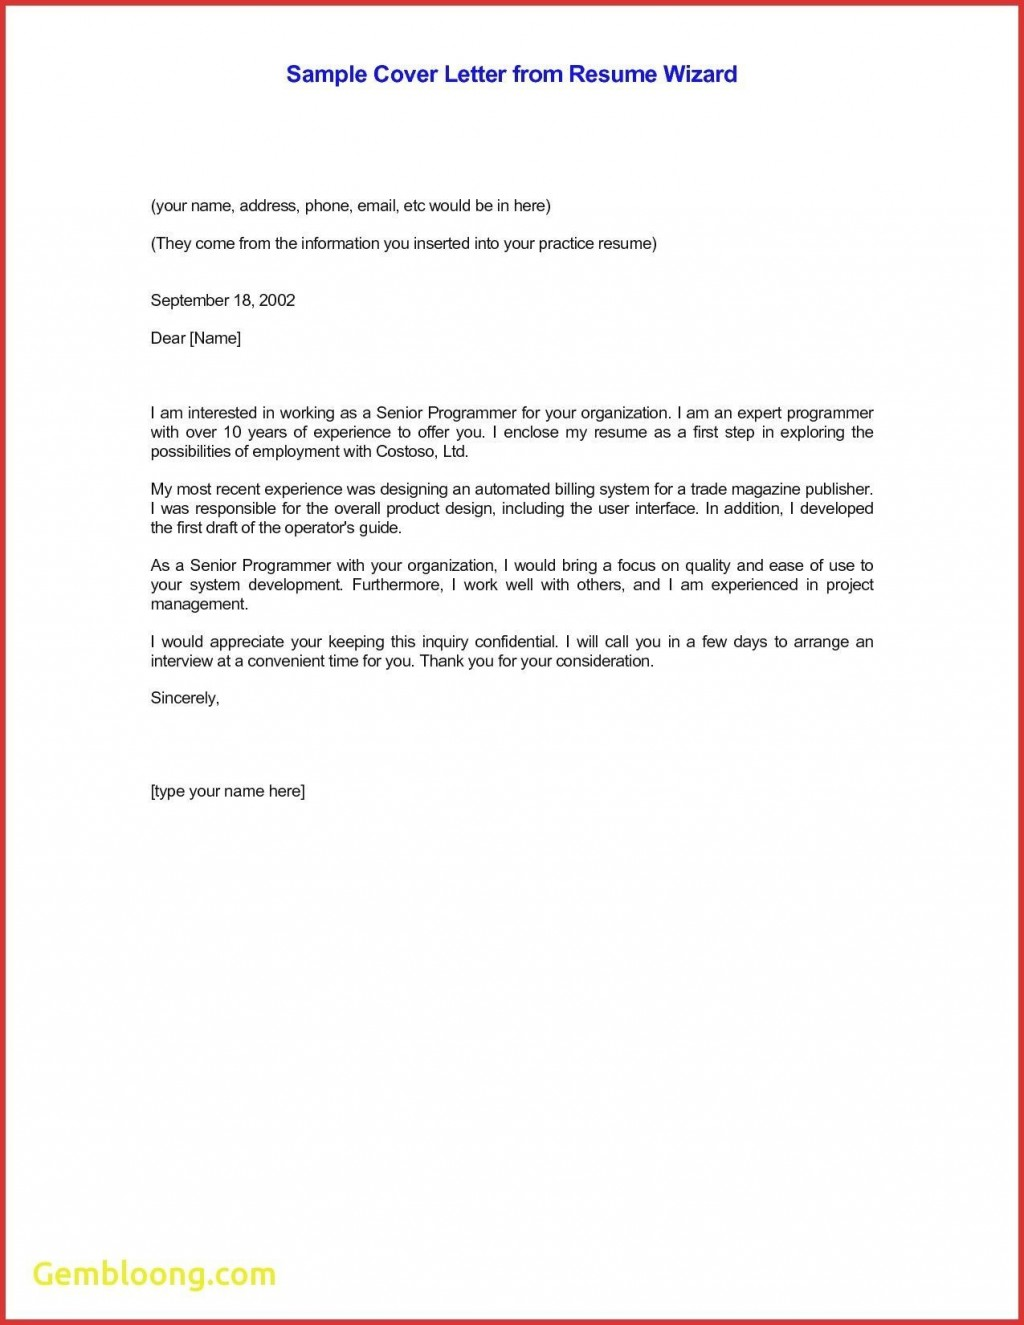 005 Surprising Email Cover Letter Example For Resume Picture  Sample Through AttachedLarge